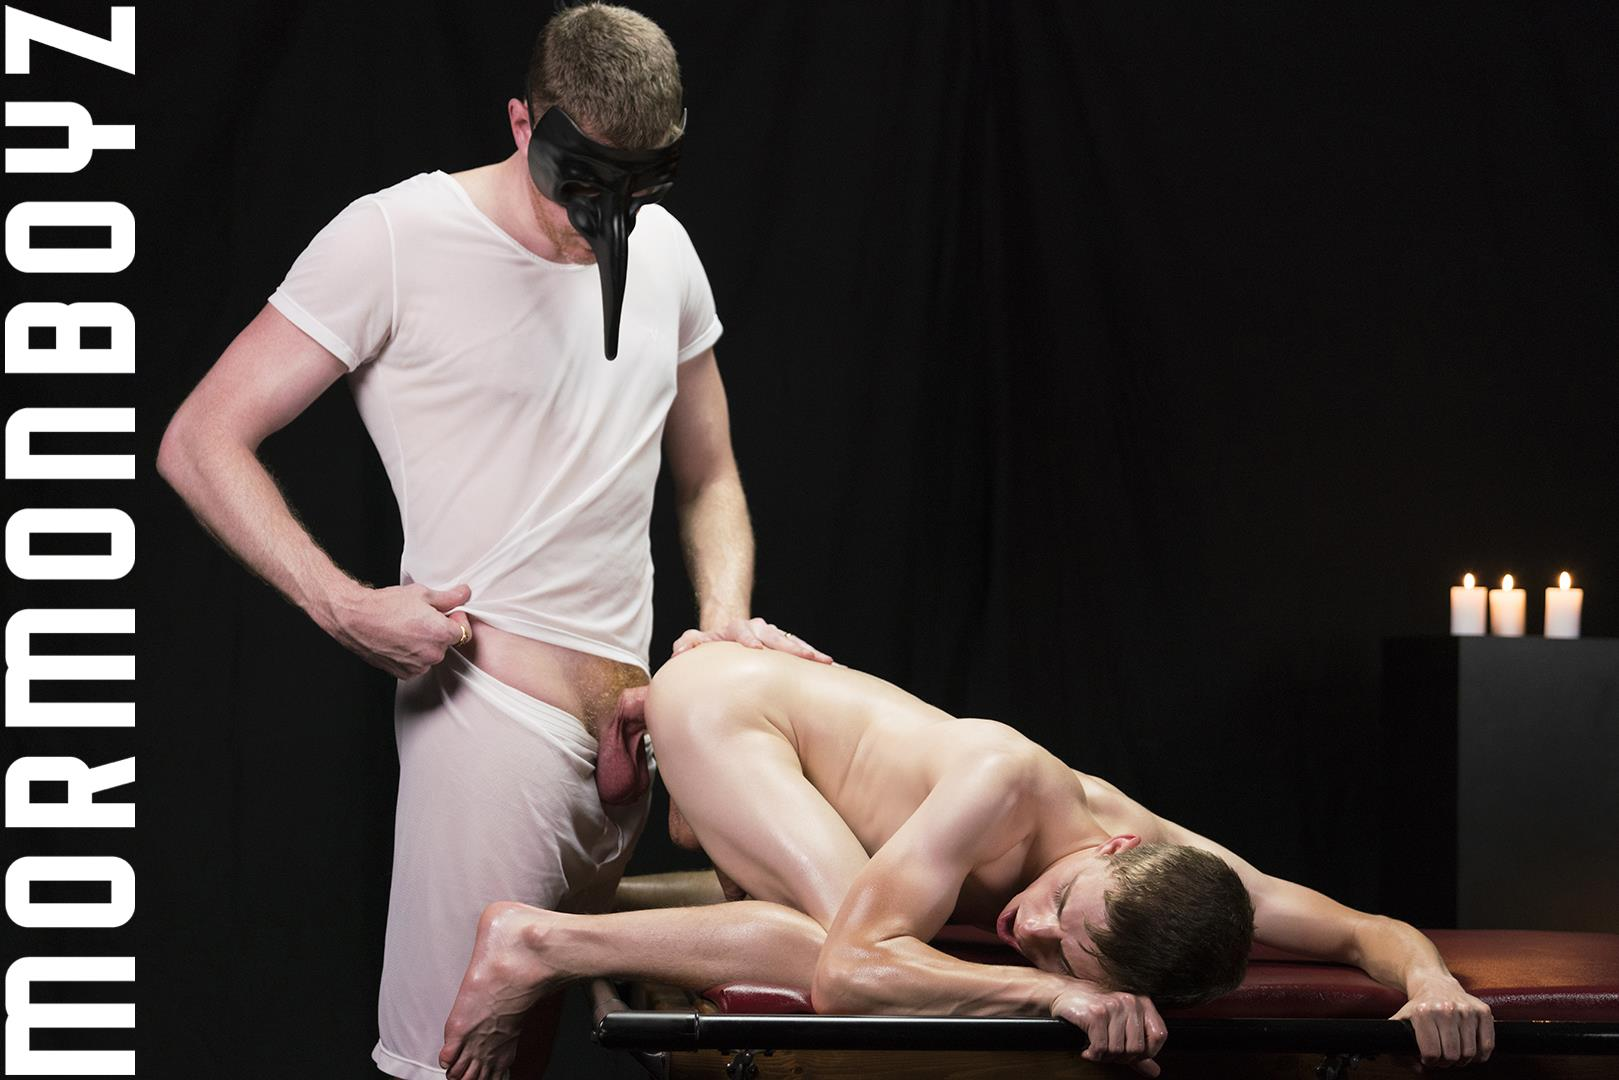 Mormon-Boyz-Older-Big-Dick-Daddy-Barebacking-Younger-Twink-Gay-Sex-Video-21 Mormon Missionary Twink Takes A Thick Daddy Cock Up The Ass Raw